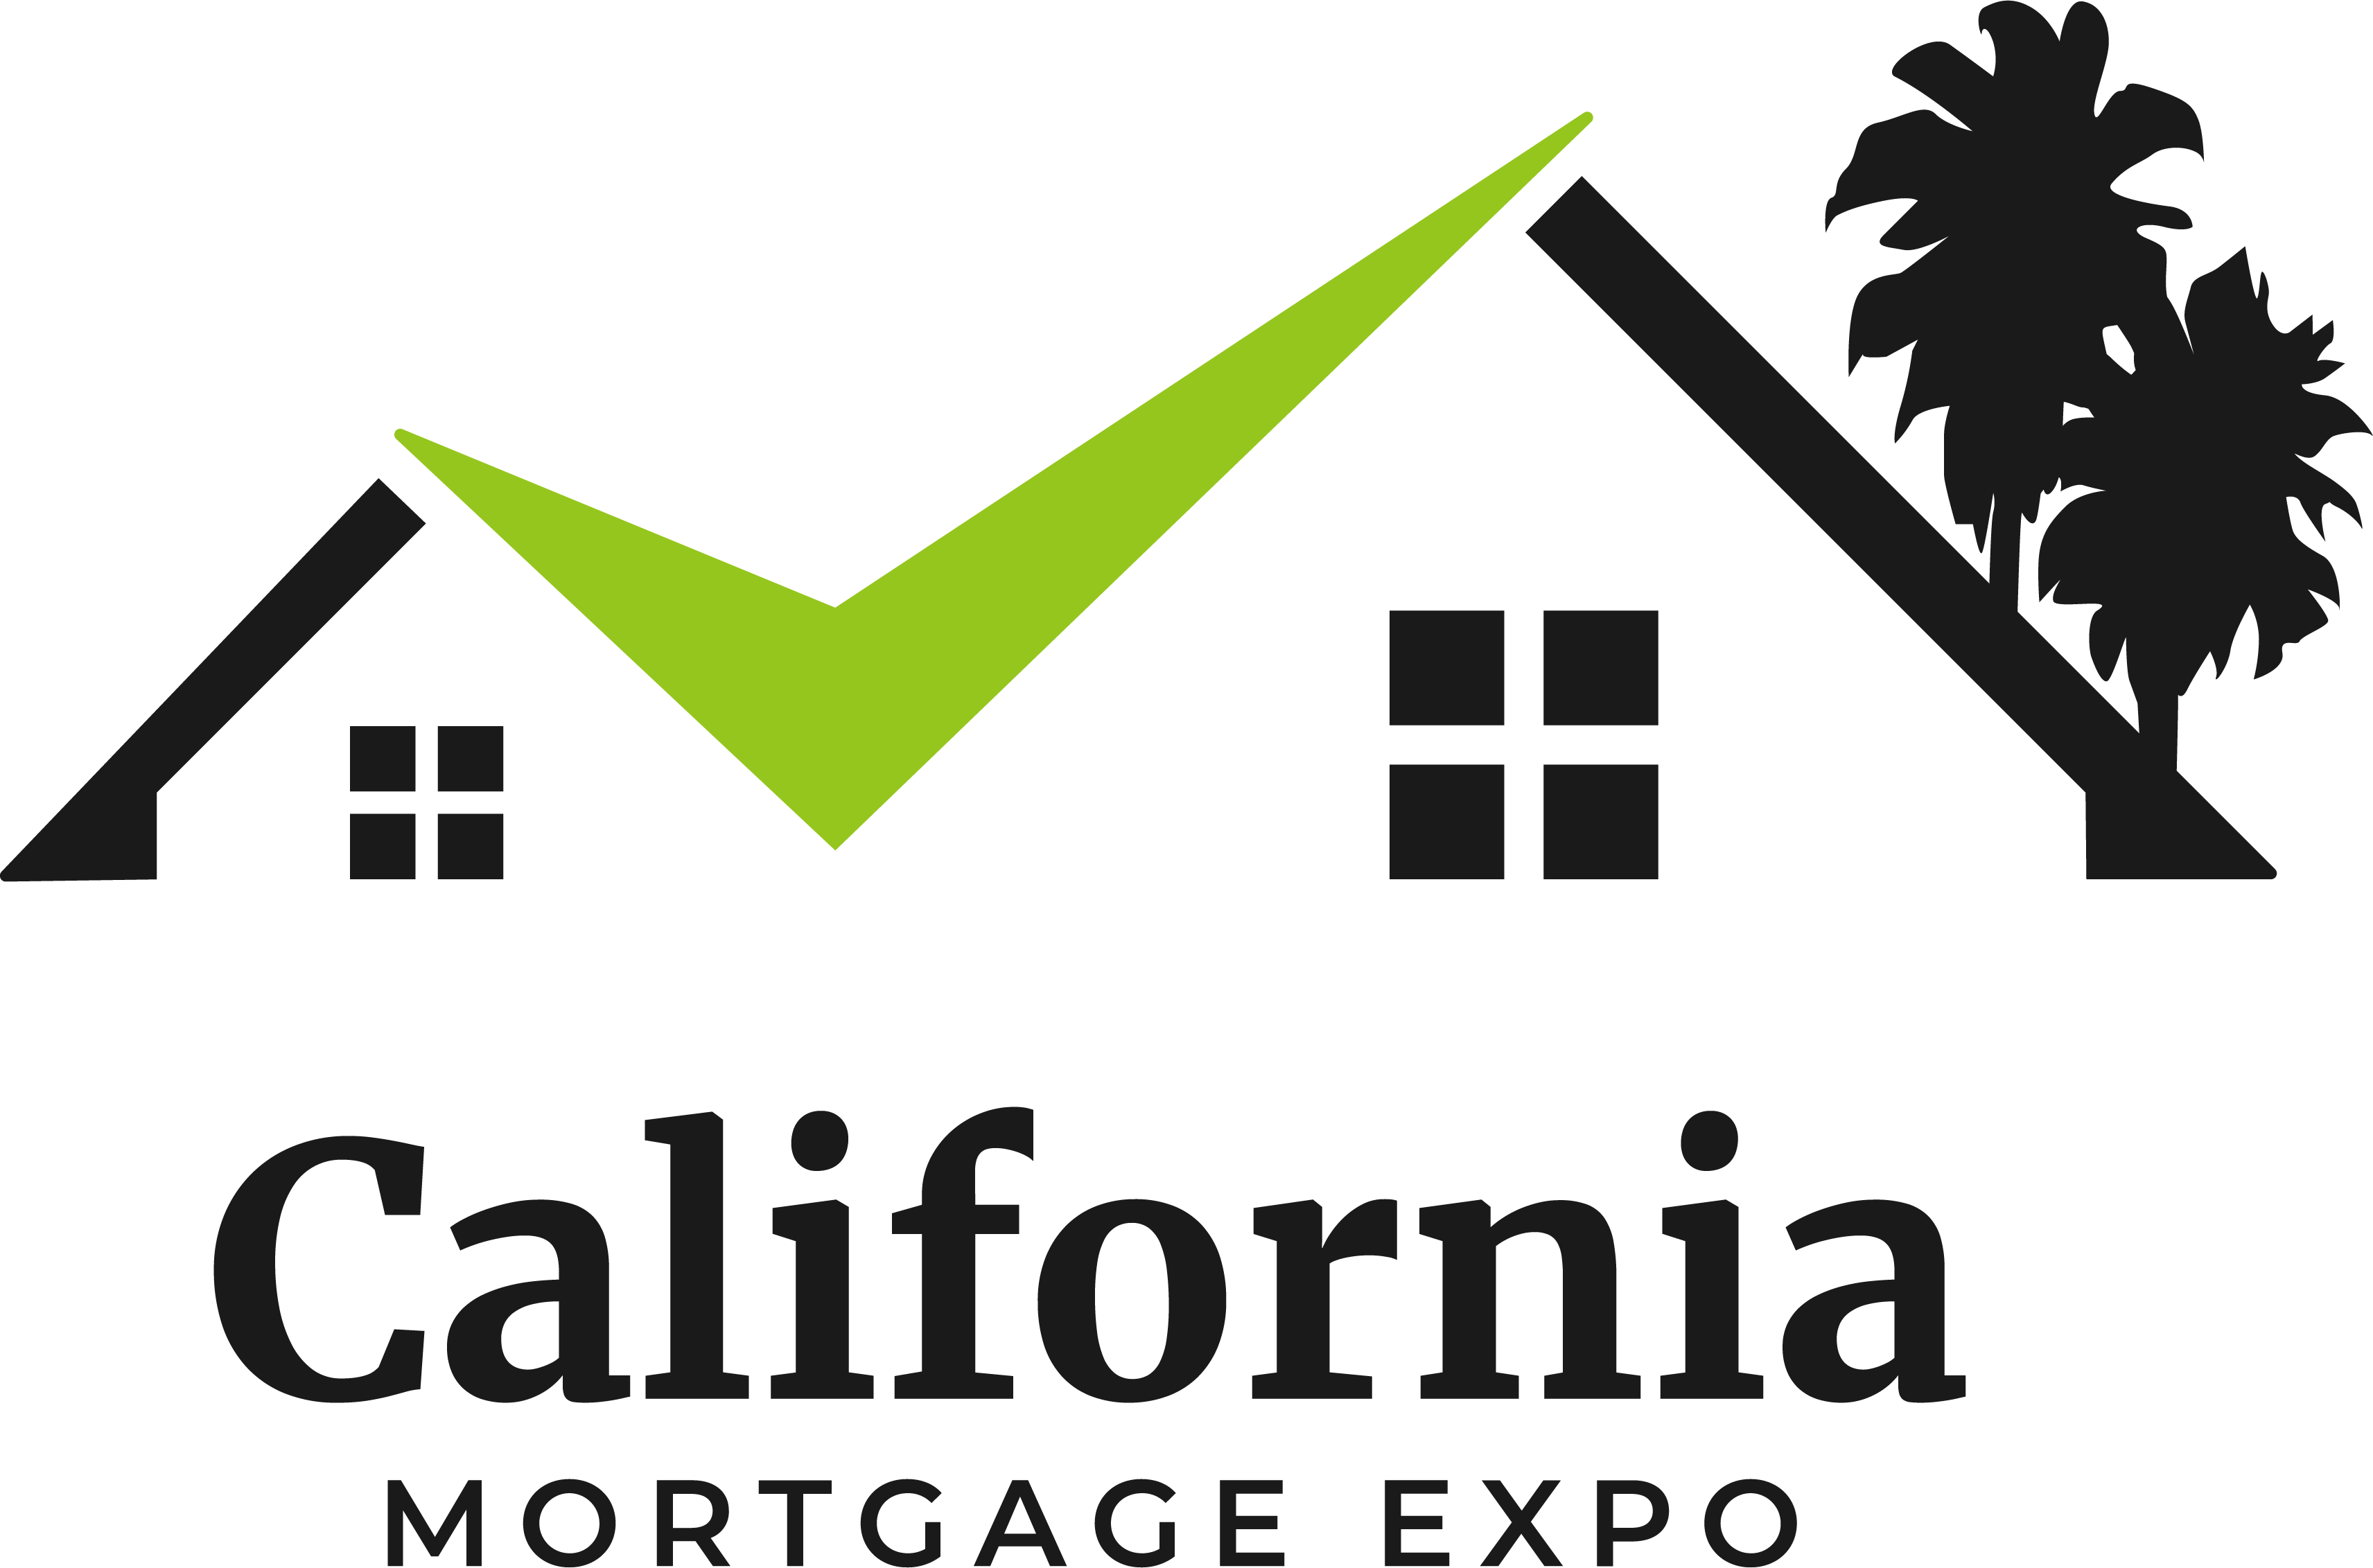 California Mortgage Expo — Glendale